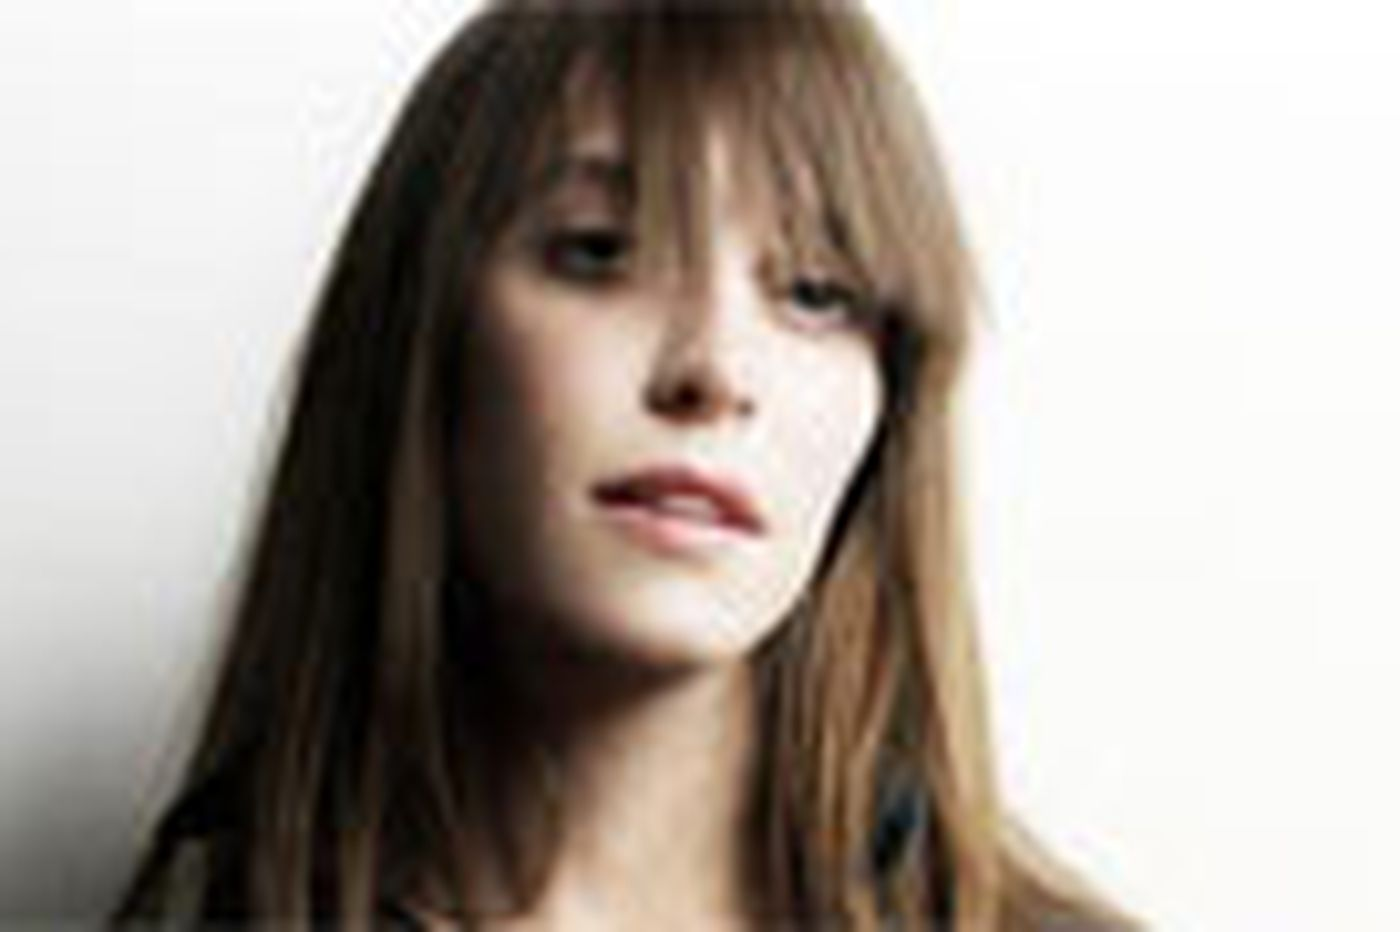 Demolishing easy-listening label, Feist brings urgent, complex pop to the Academy